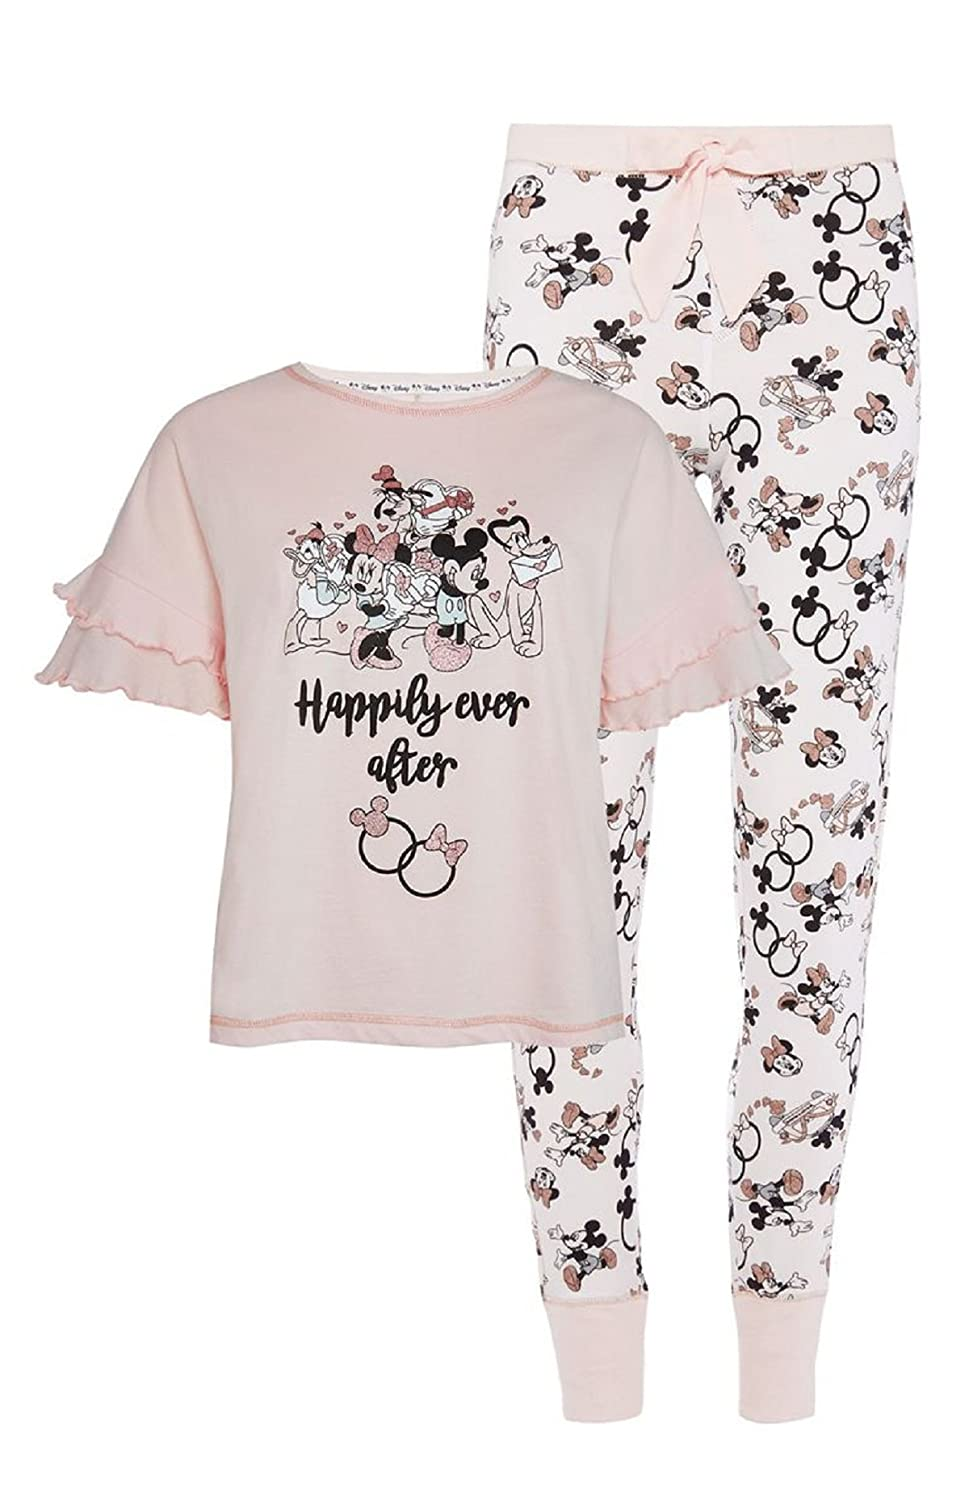 7ce859705413 Primark Ladies Girls Women s Disney Mickey Minnie Mouse Happily Ever ...